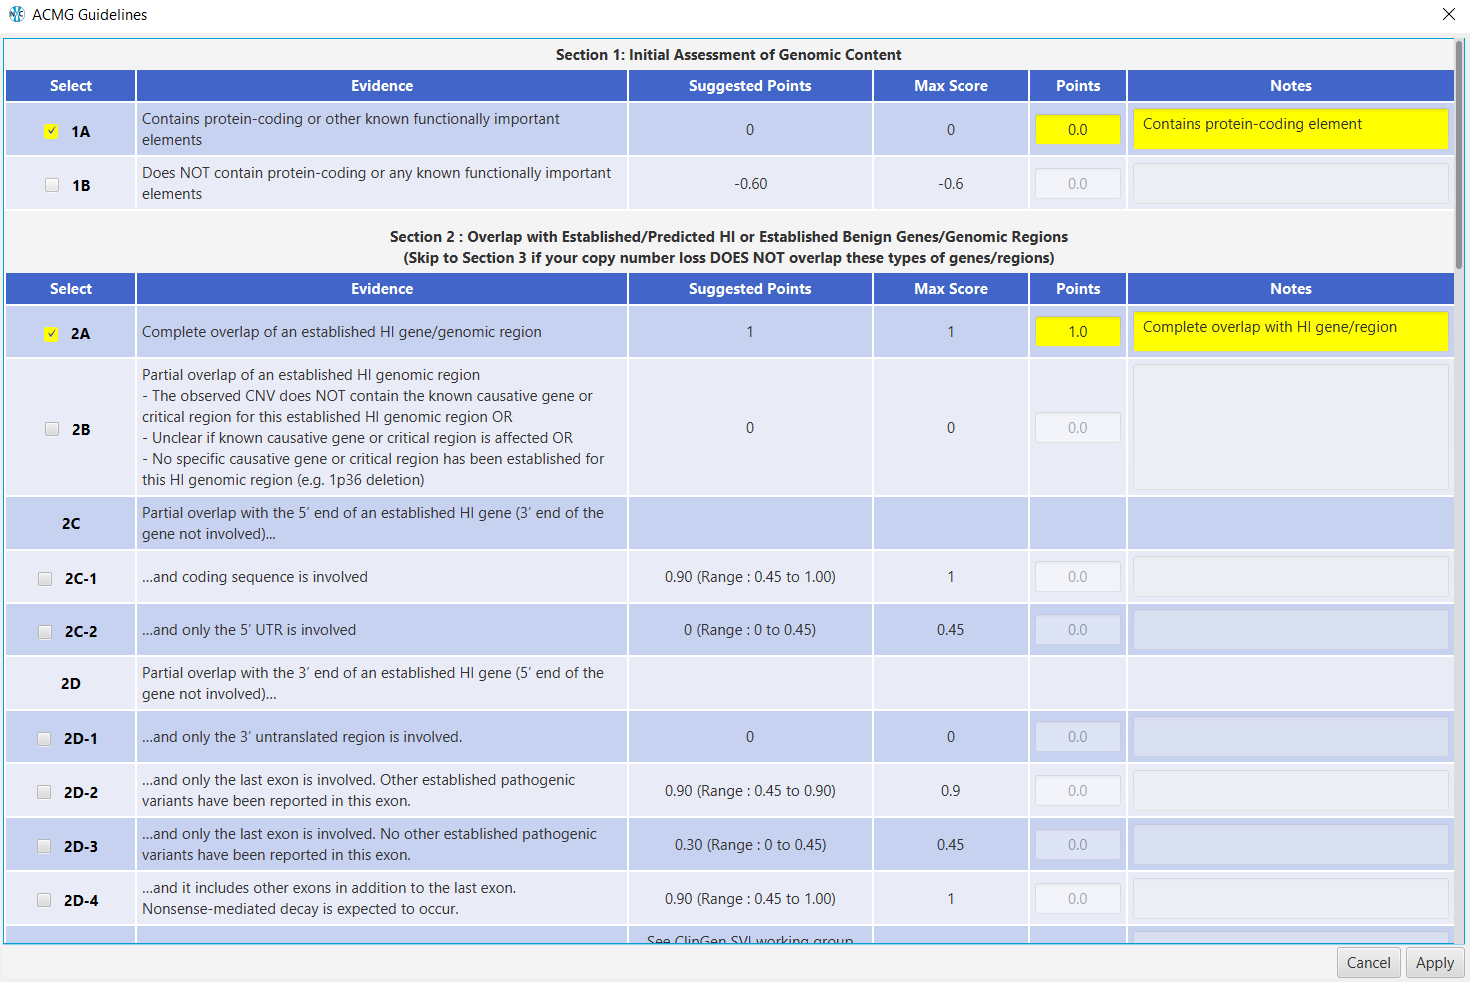 expanded ACMG guidelines